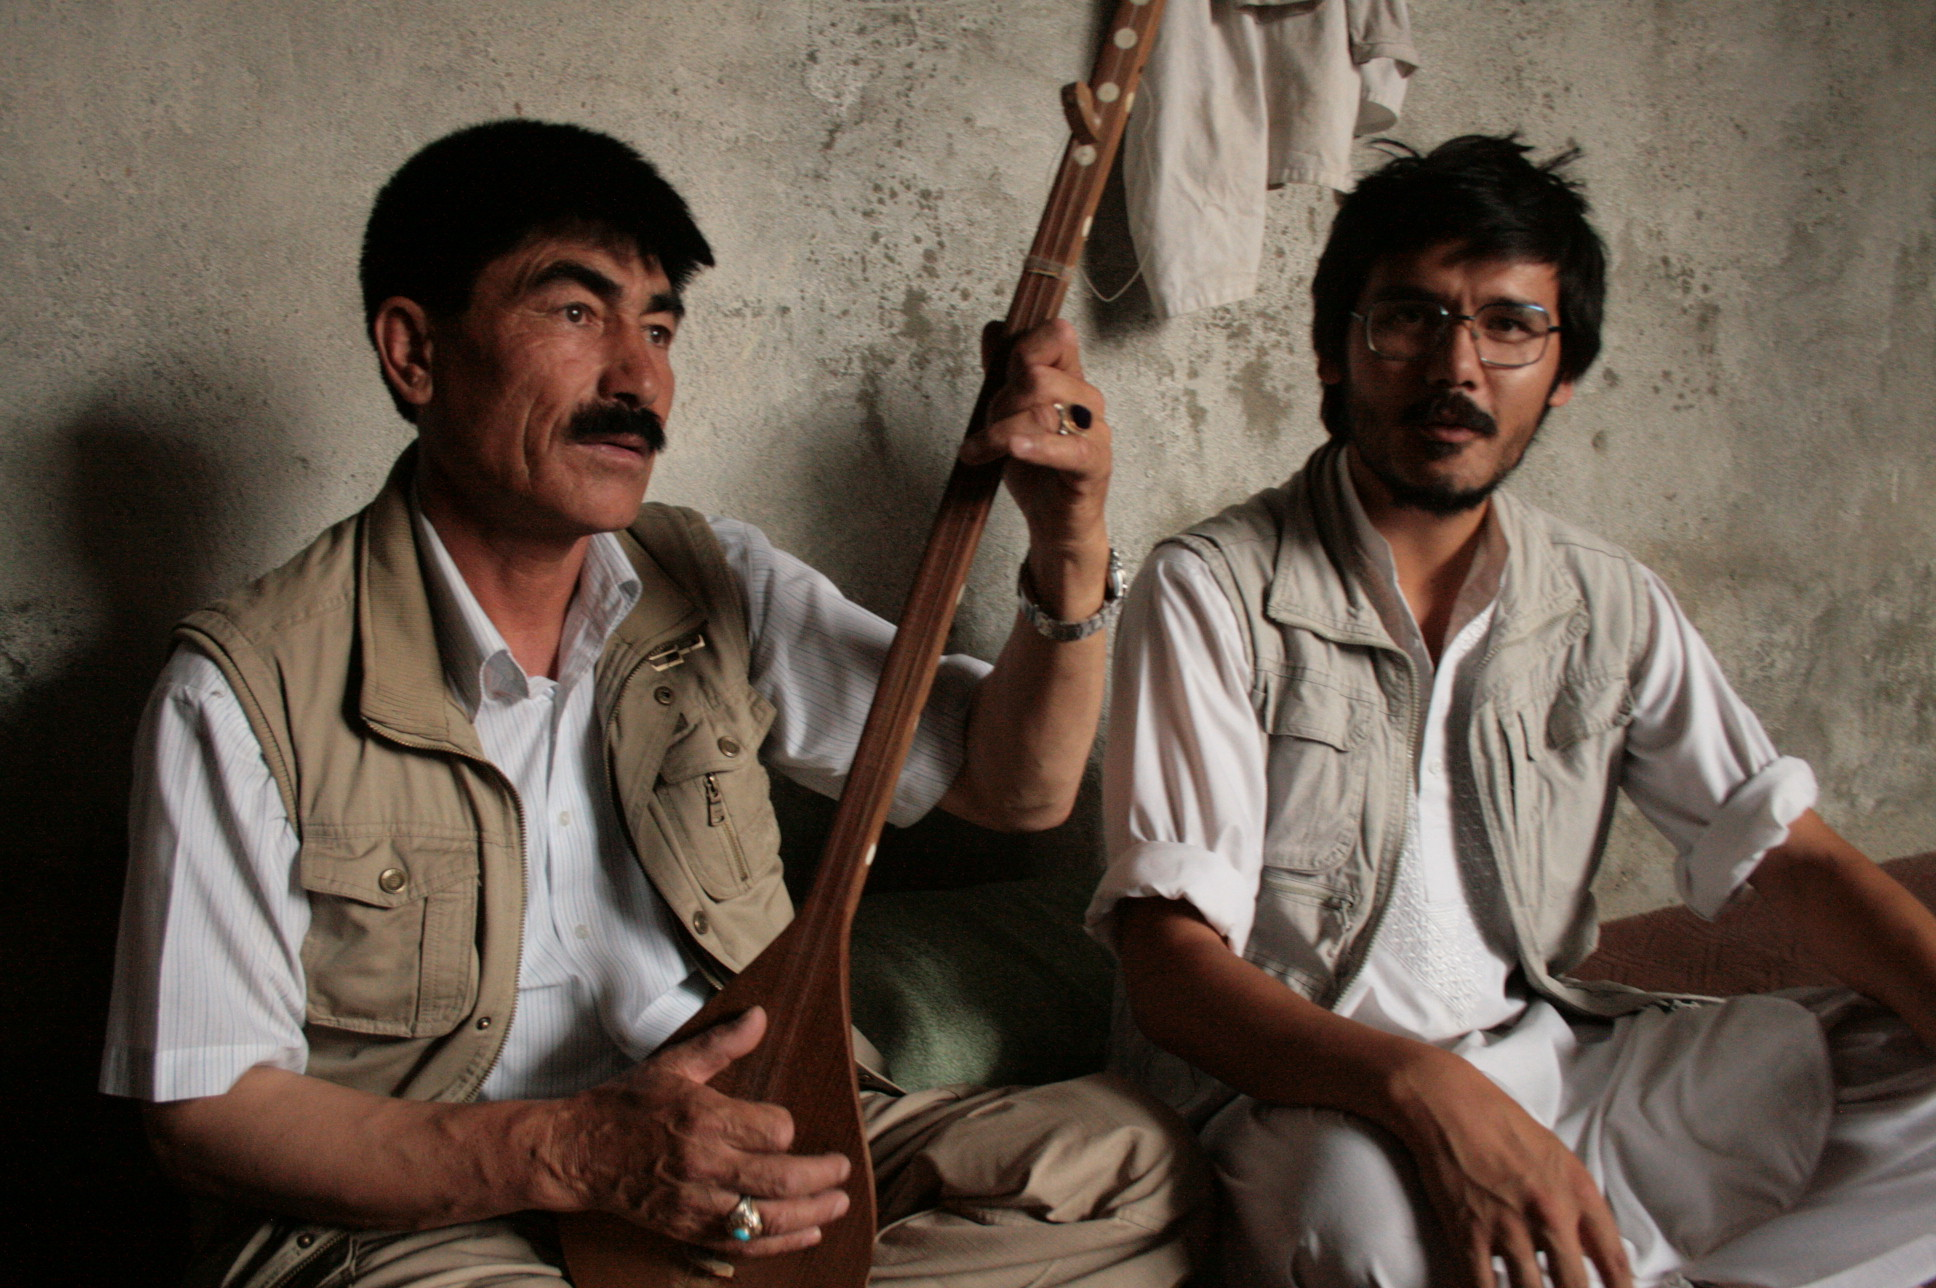 Mir Chaman Sultani with his dambora. To the right Tahir Bakhtiary from Moesgaard Museum. Photo: Tahir Bakhtiary, 2013